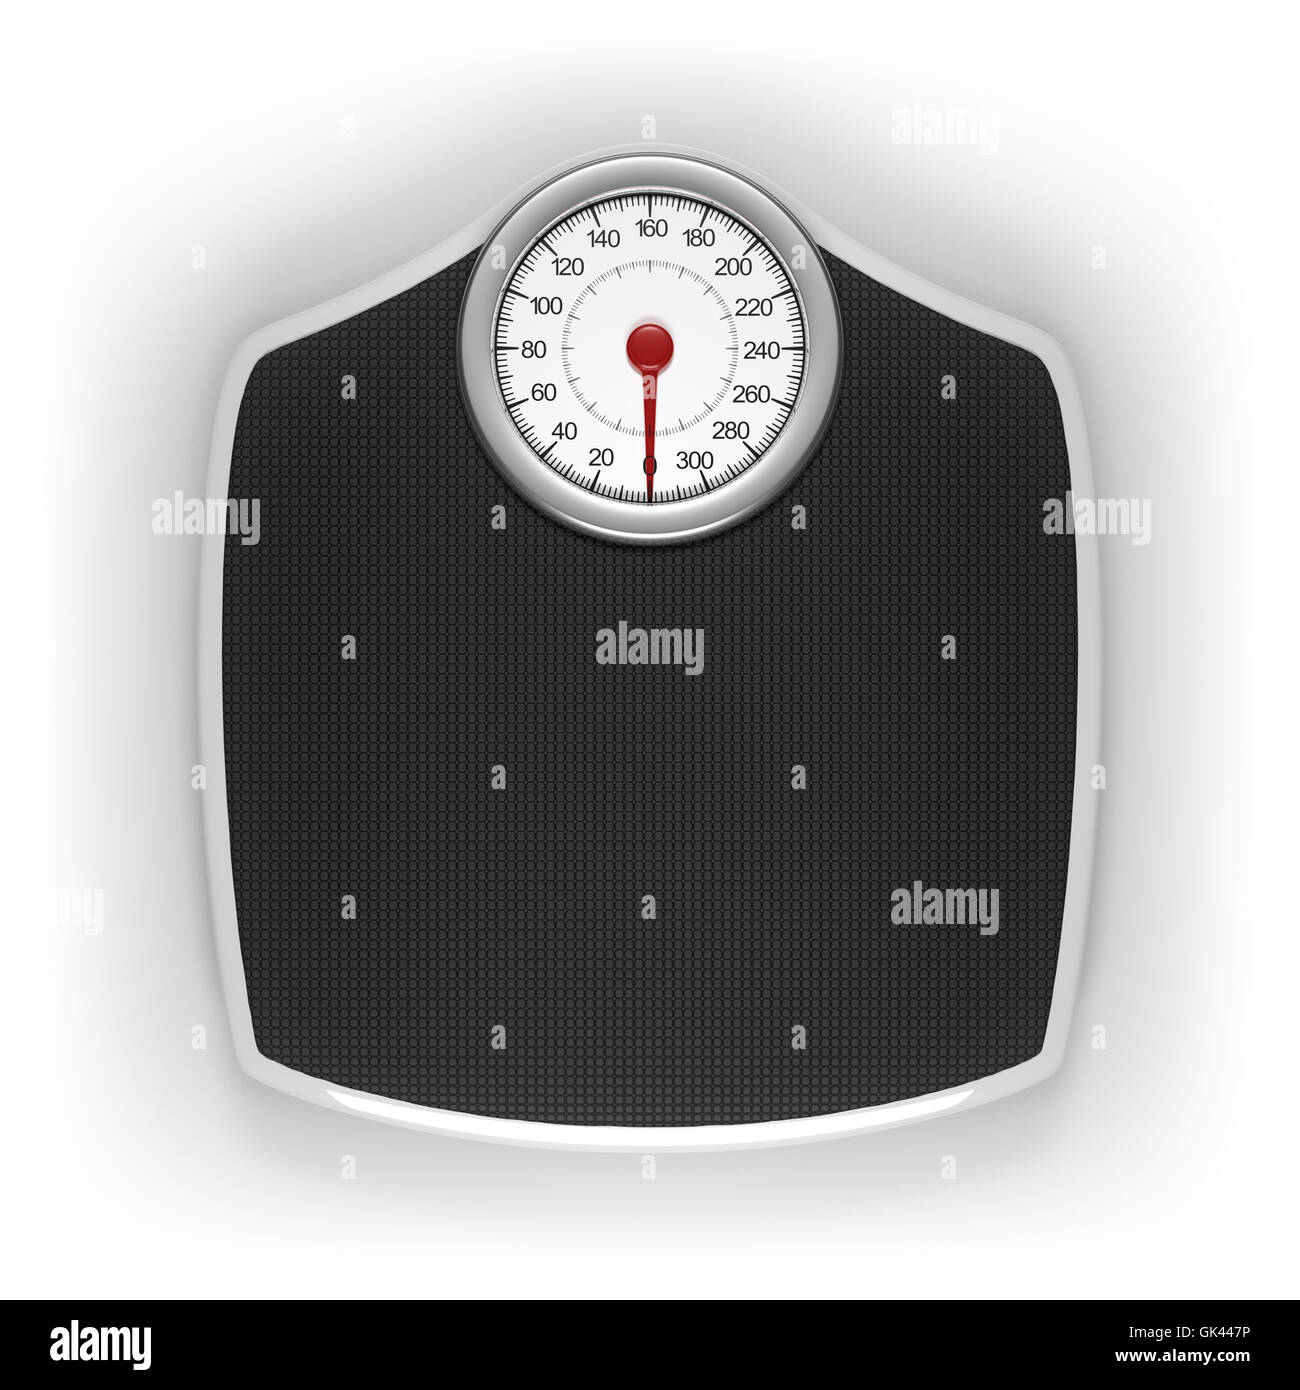 Weight scale with clipping path included. - Stock Image